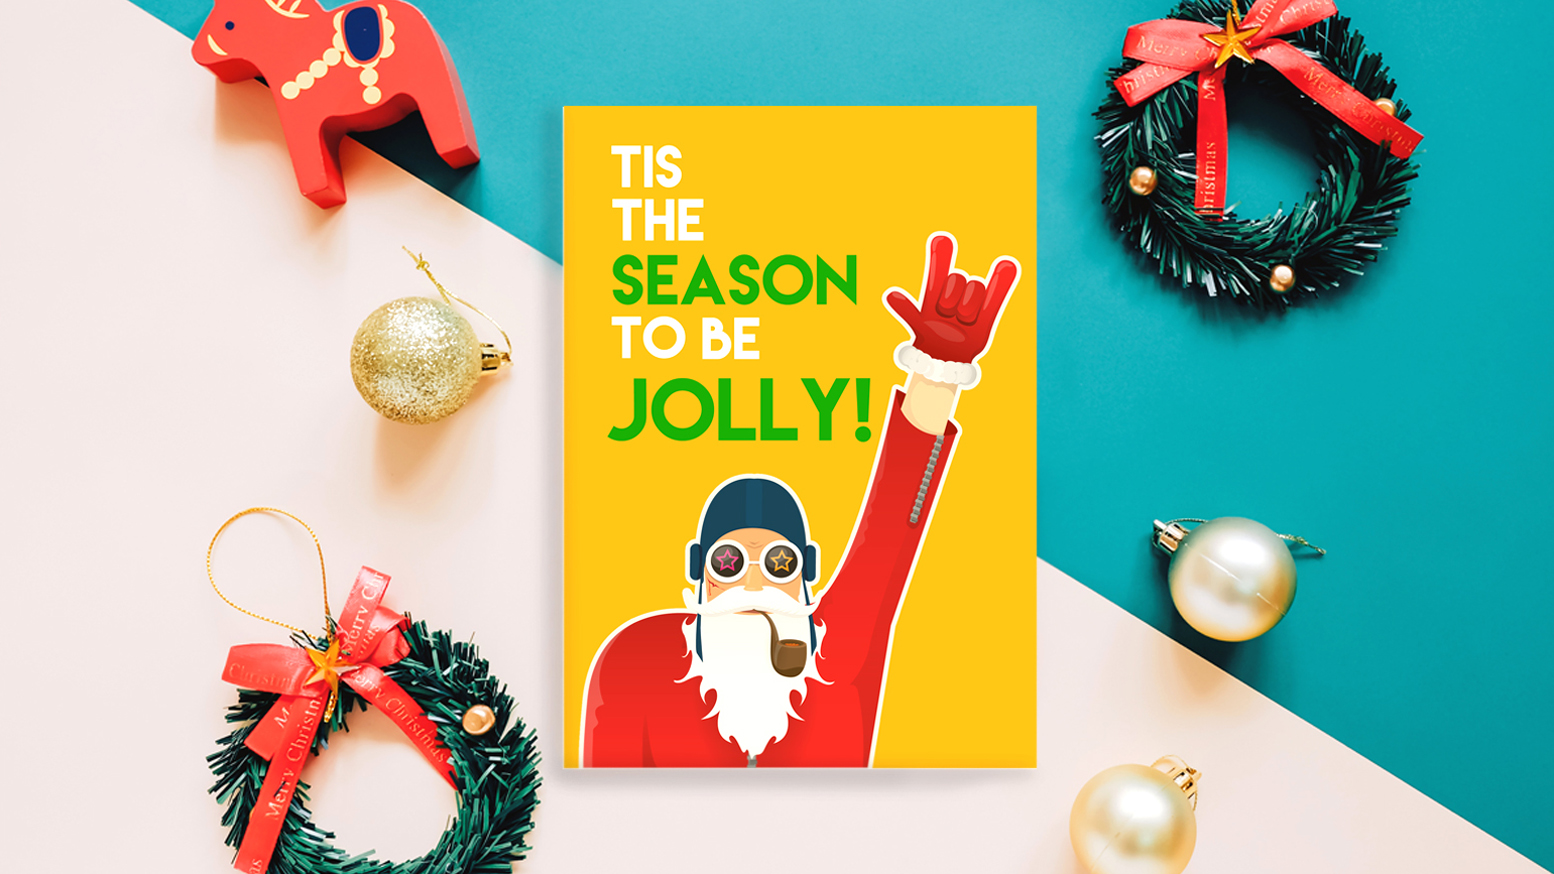 """Tis the season to be jolly"" christmas card"